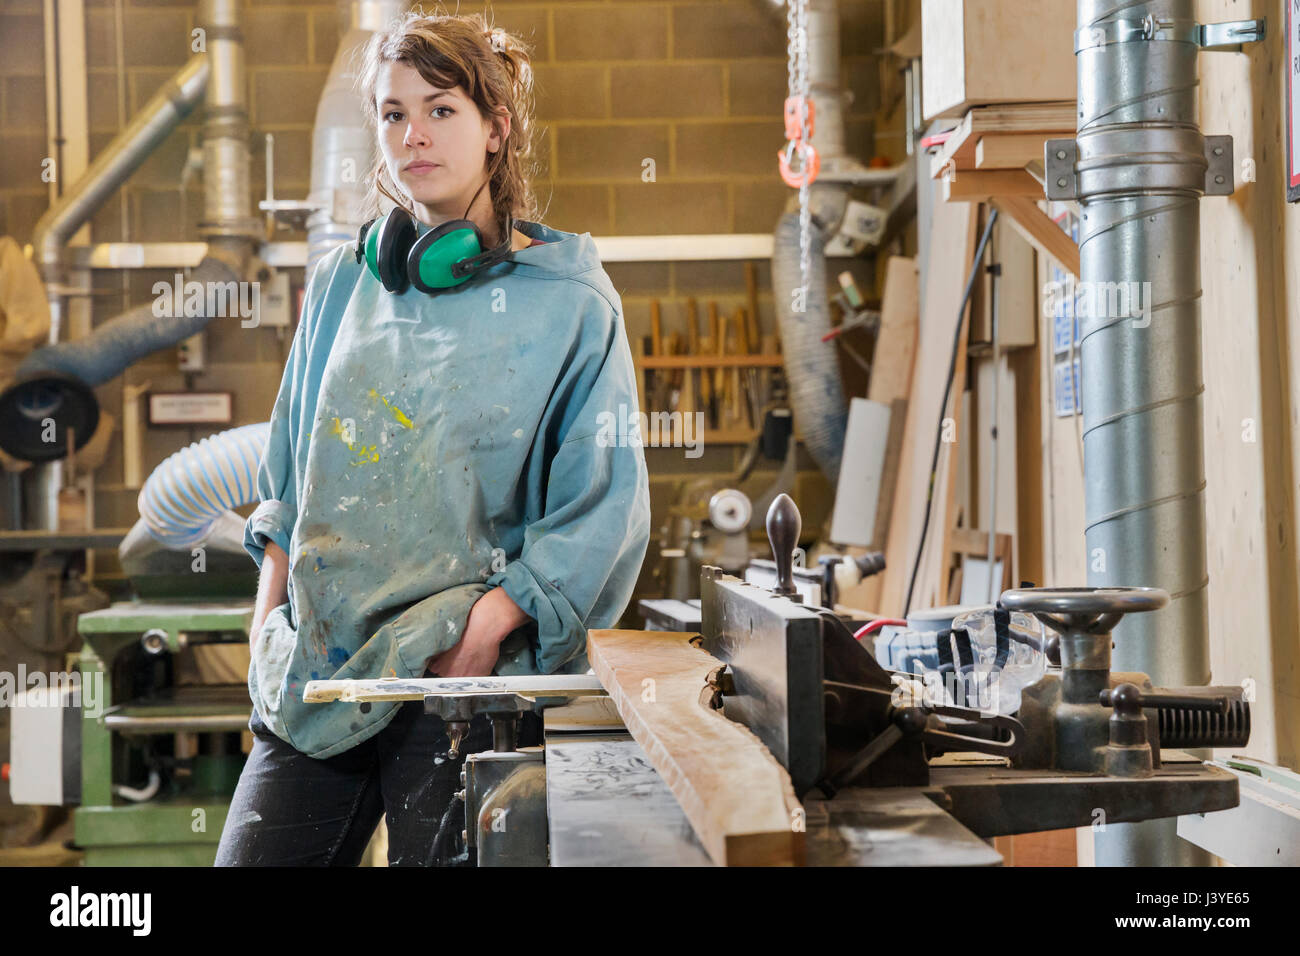 Portrait of young woman next to machinery in wood workshop - Stock Image